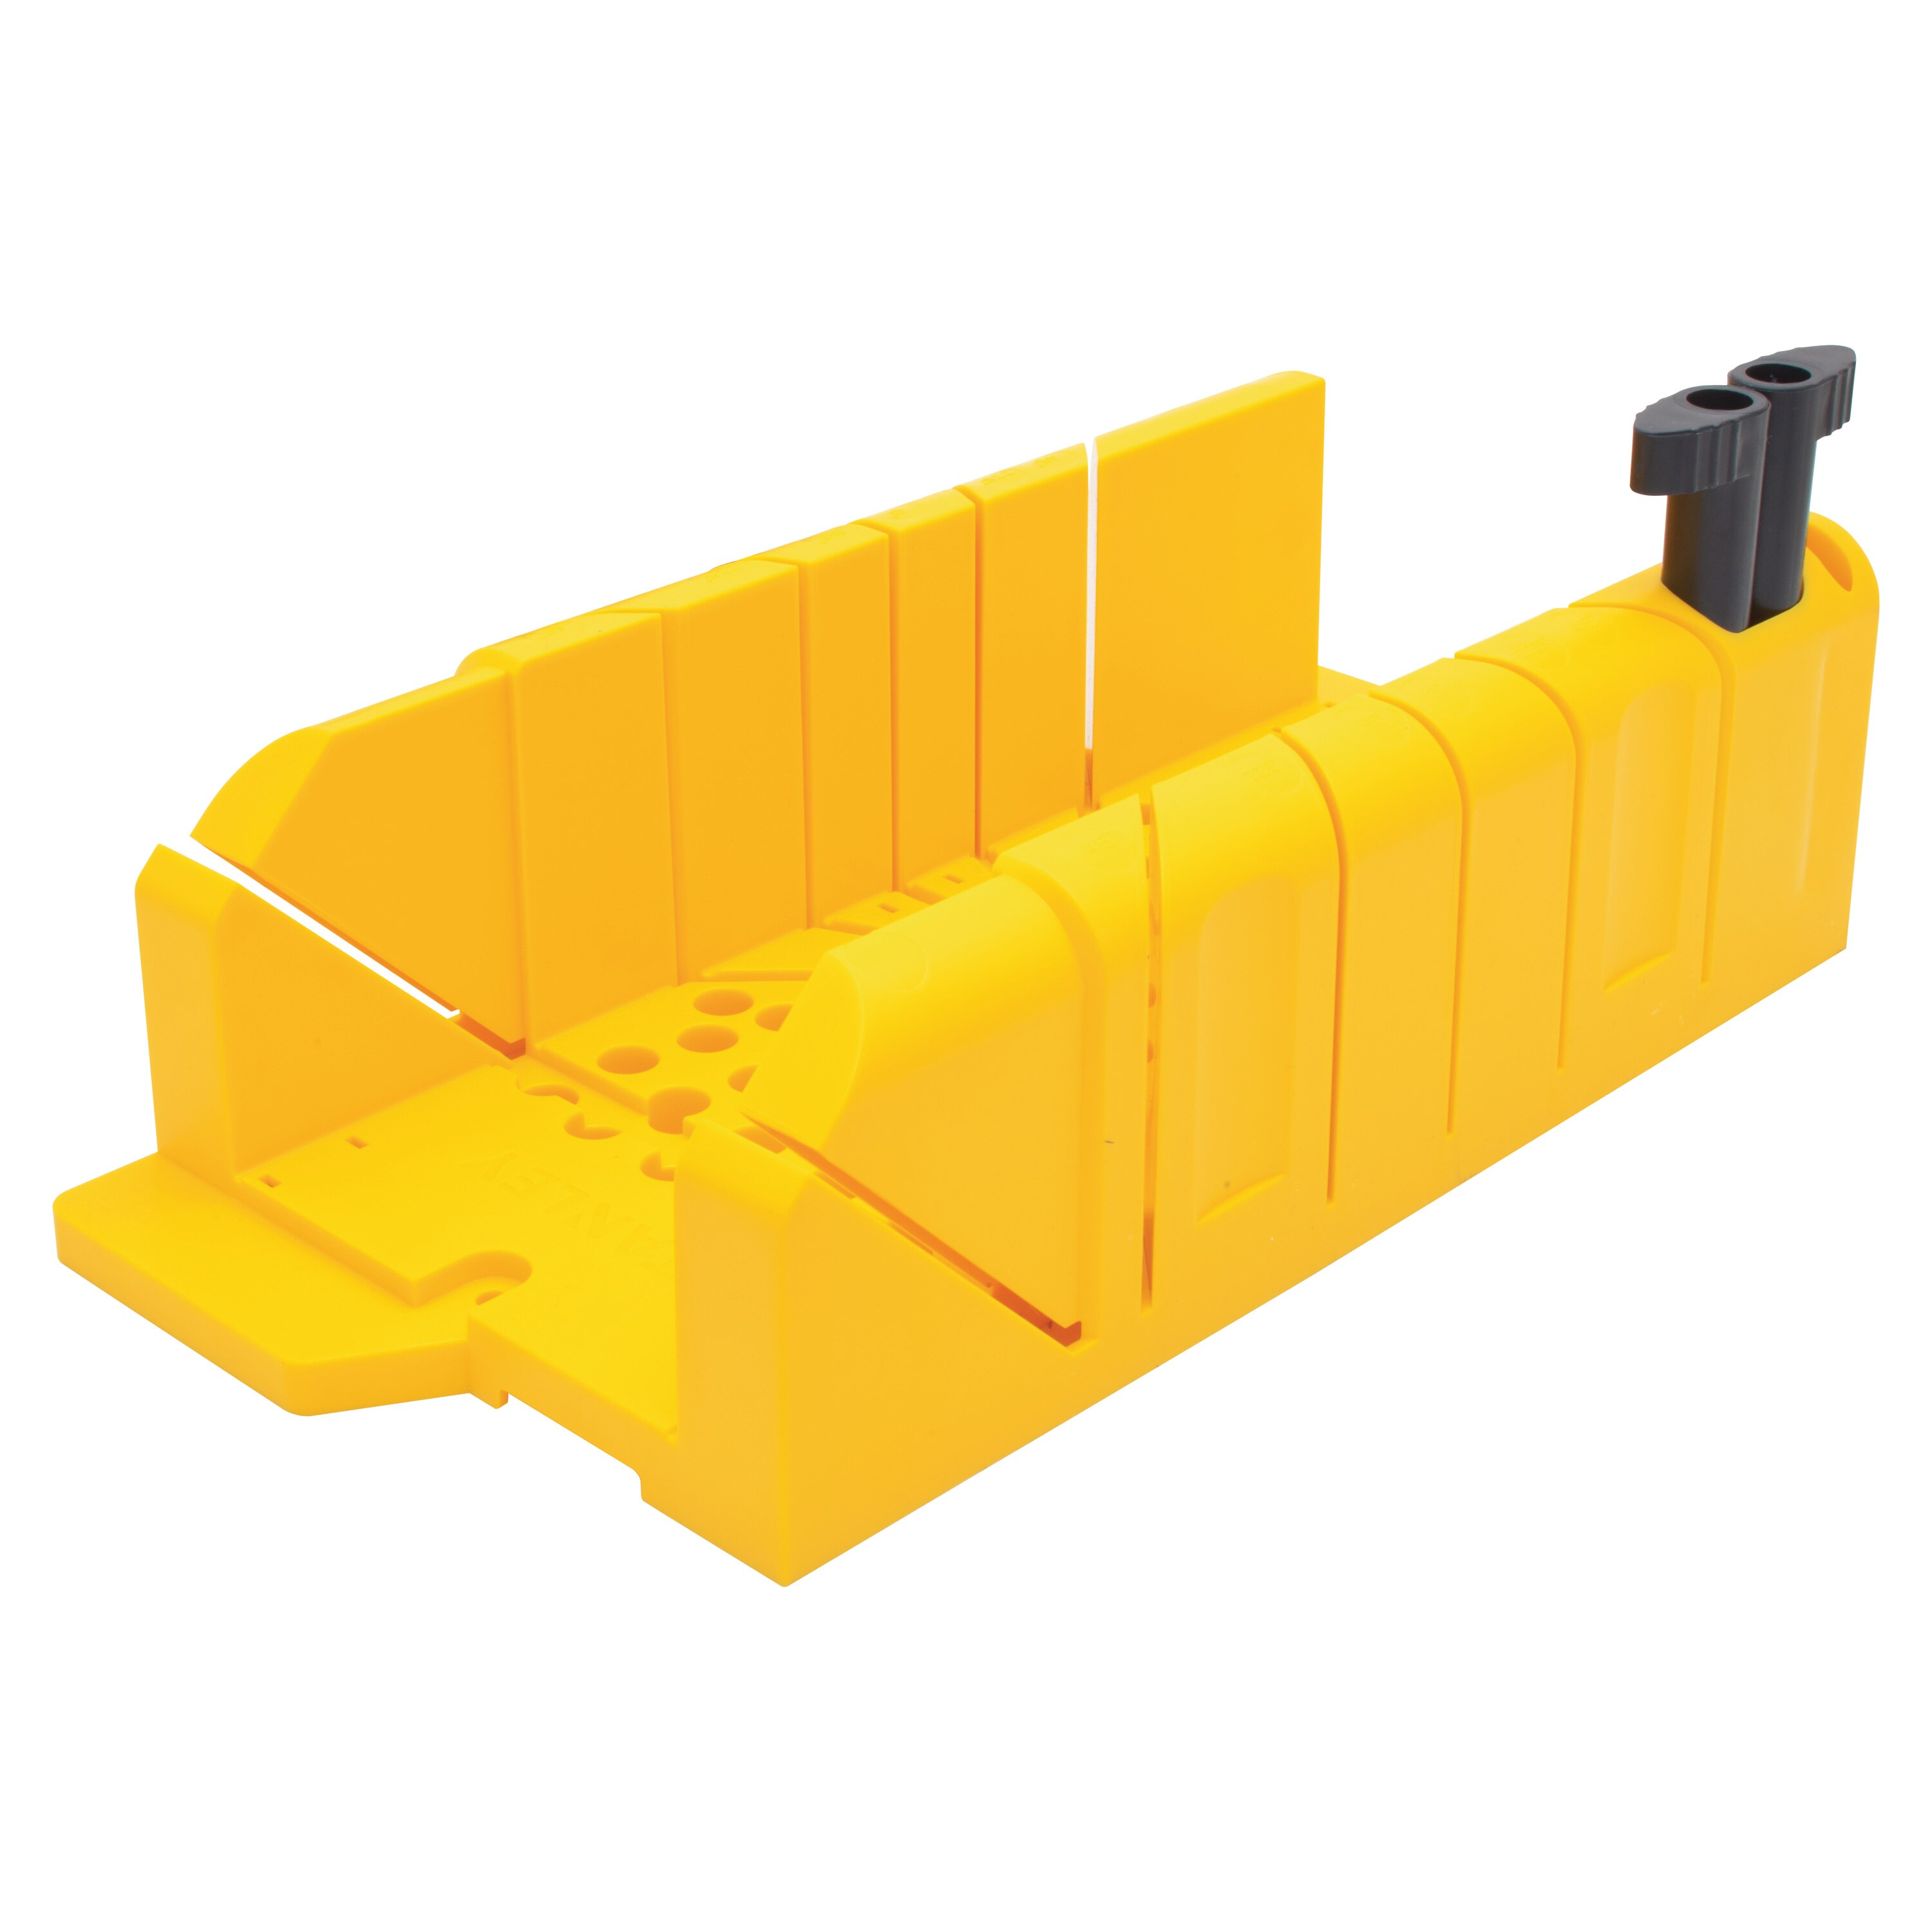 Stanley Tools - Clamping Mitre Box - 20-112